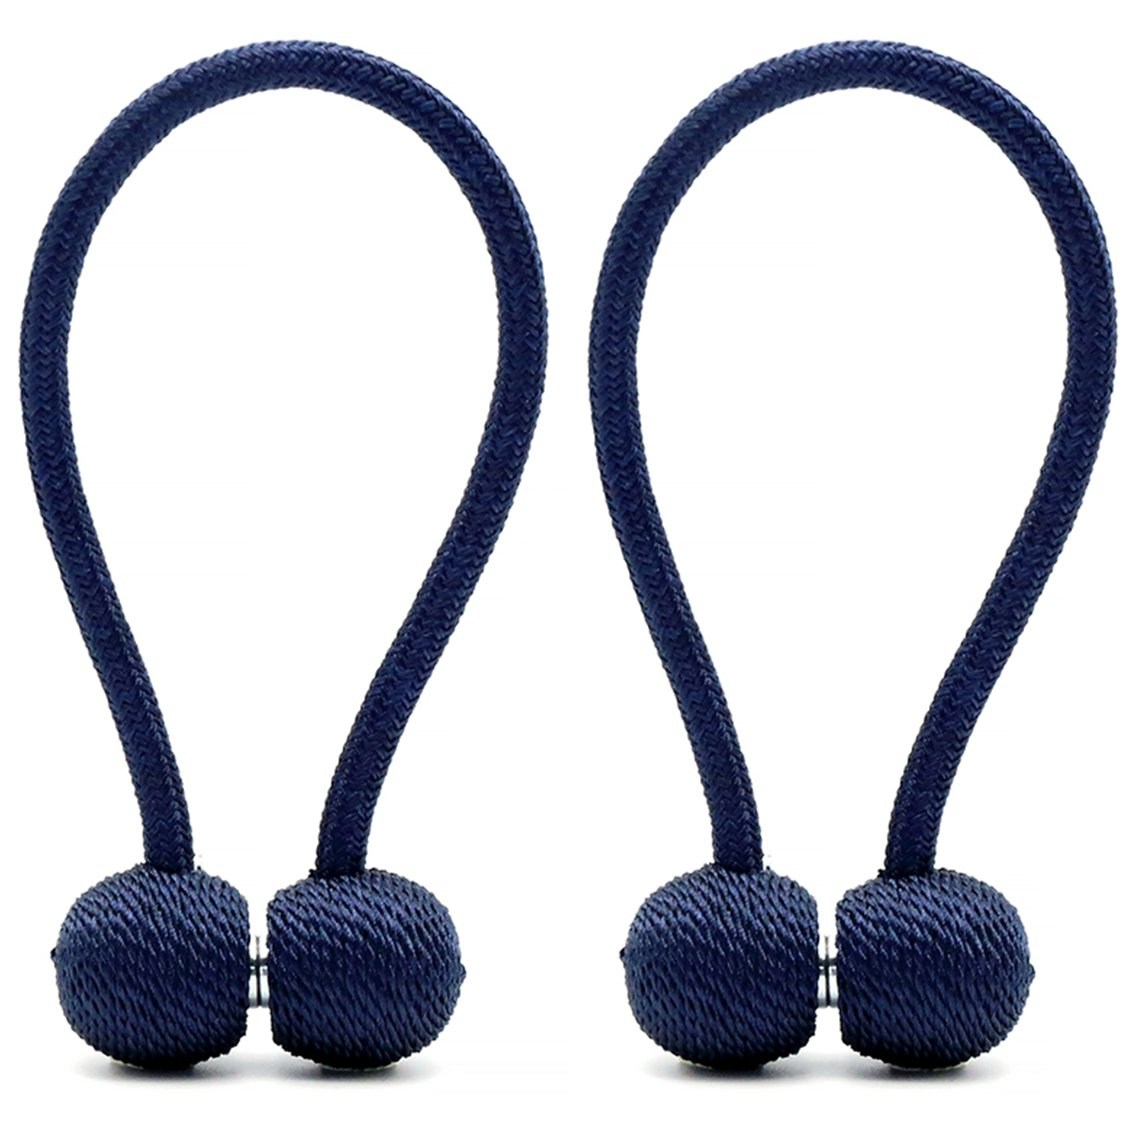 DEZENE Magnetic Curtain Tiebacks,The Most Convenient Drape Tie Backs,Decorative Rope Holdbacks/Holder for Window Sheer and Blackout Panels,Set of 2,Navy Blue